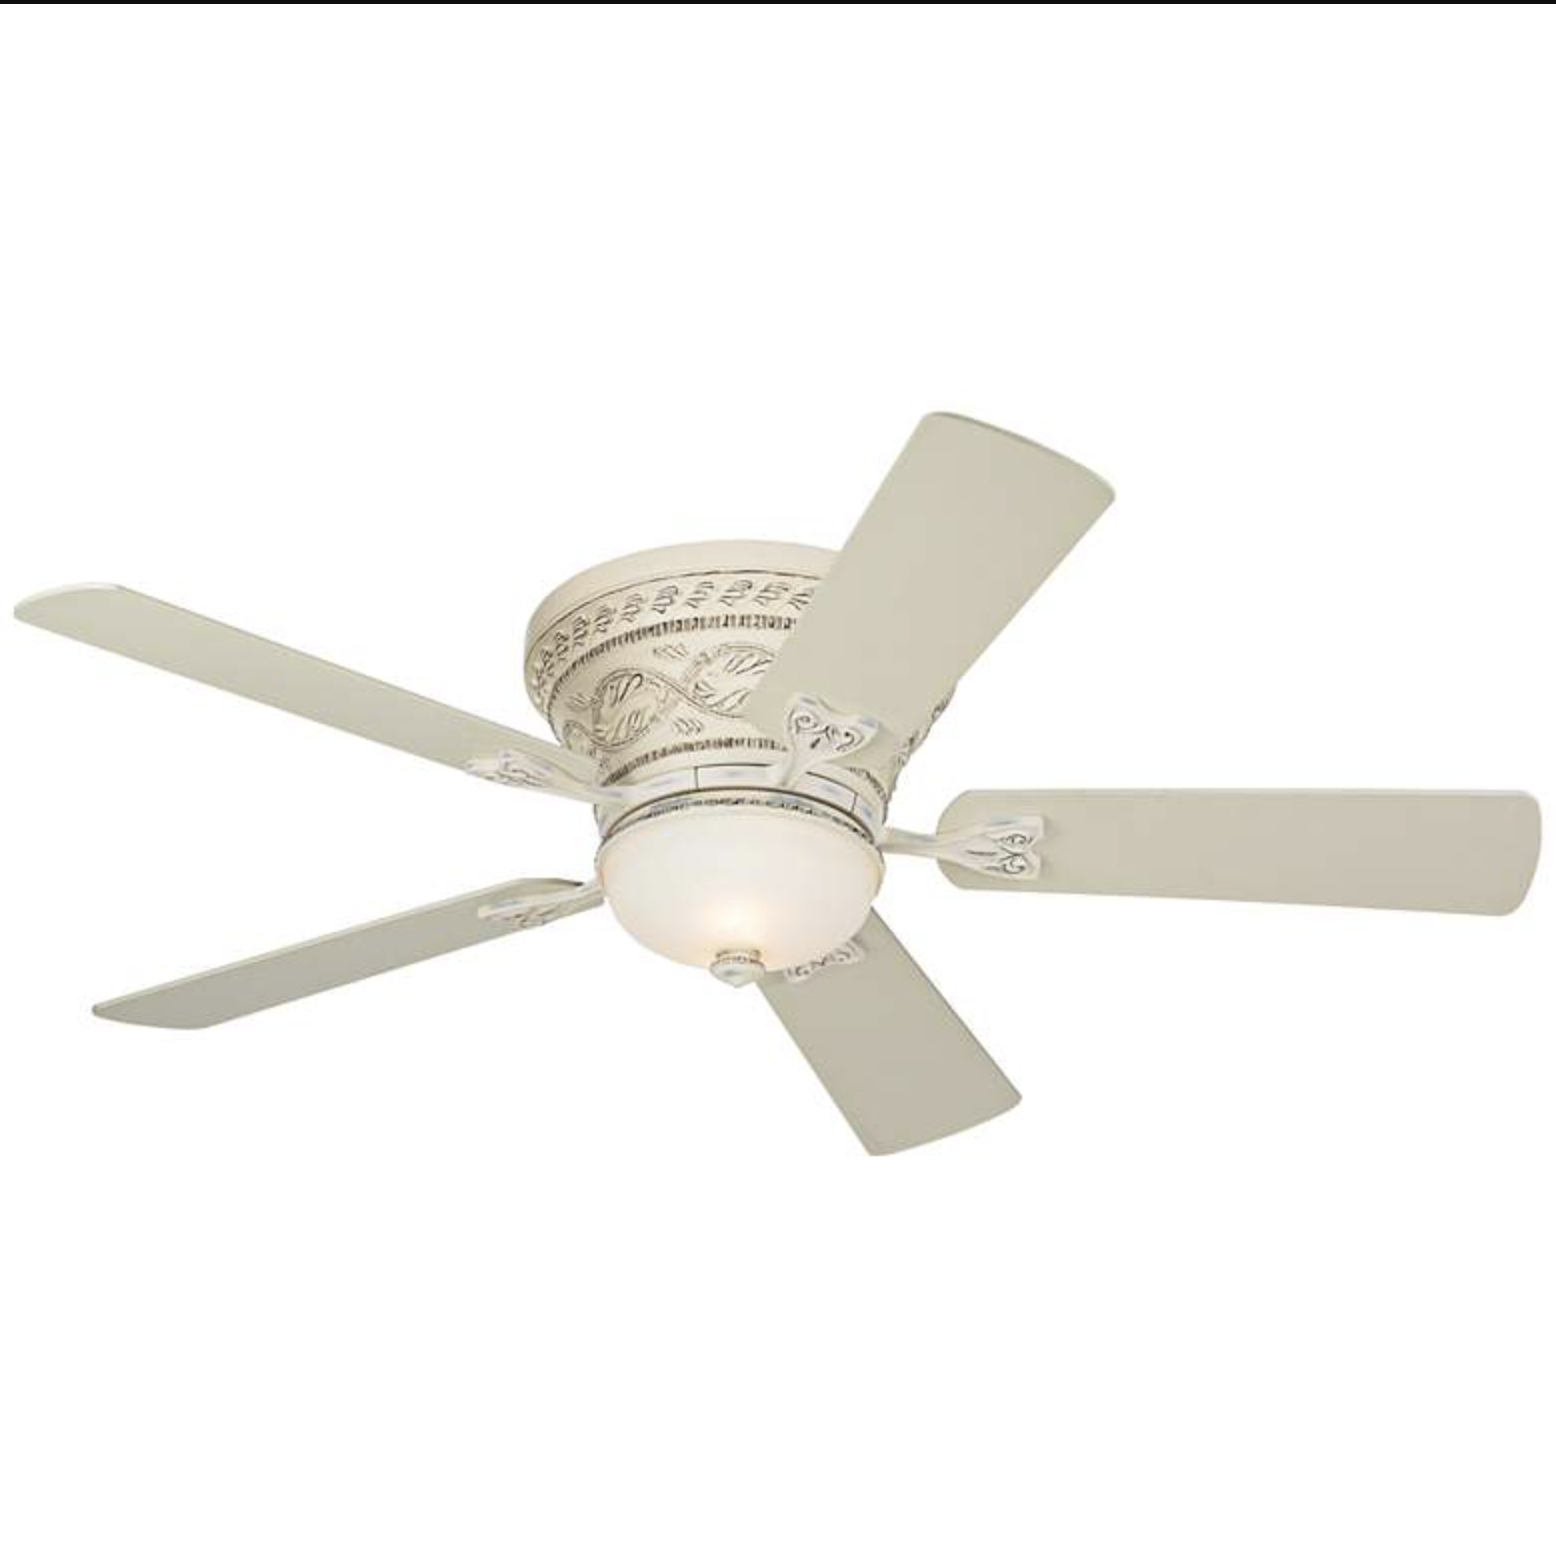 Top 10 Best Ceiling Fans For Every Style And Budget